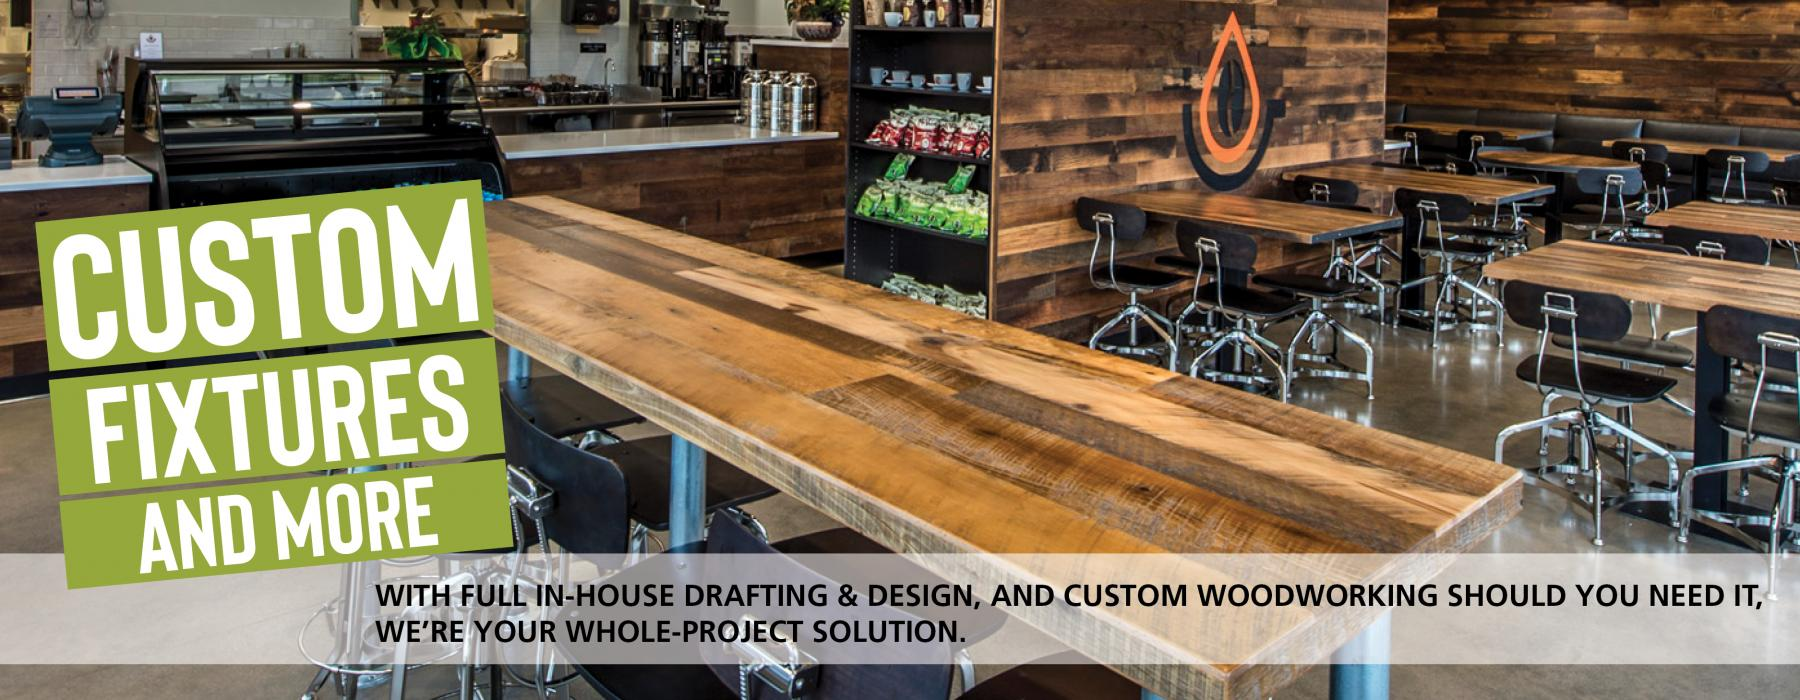 Pioneer Millworks Reclaimed Wood Tables, Counters, and Custom Fixtures